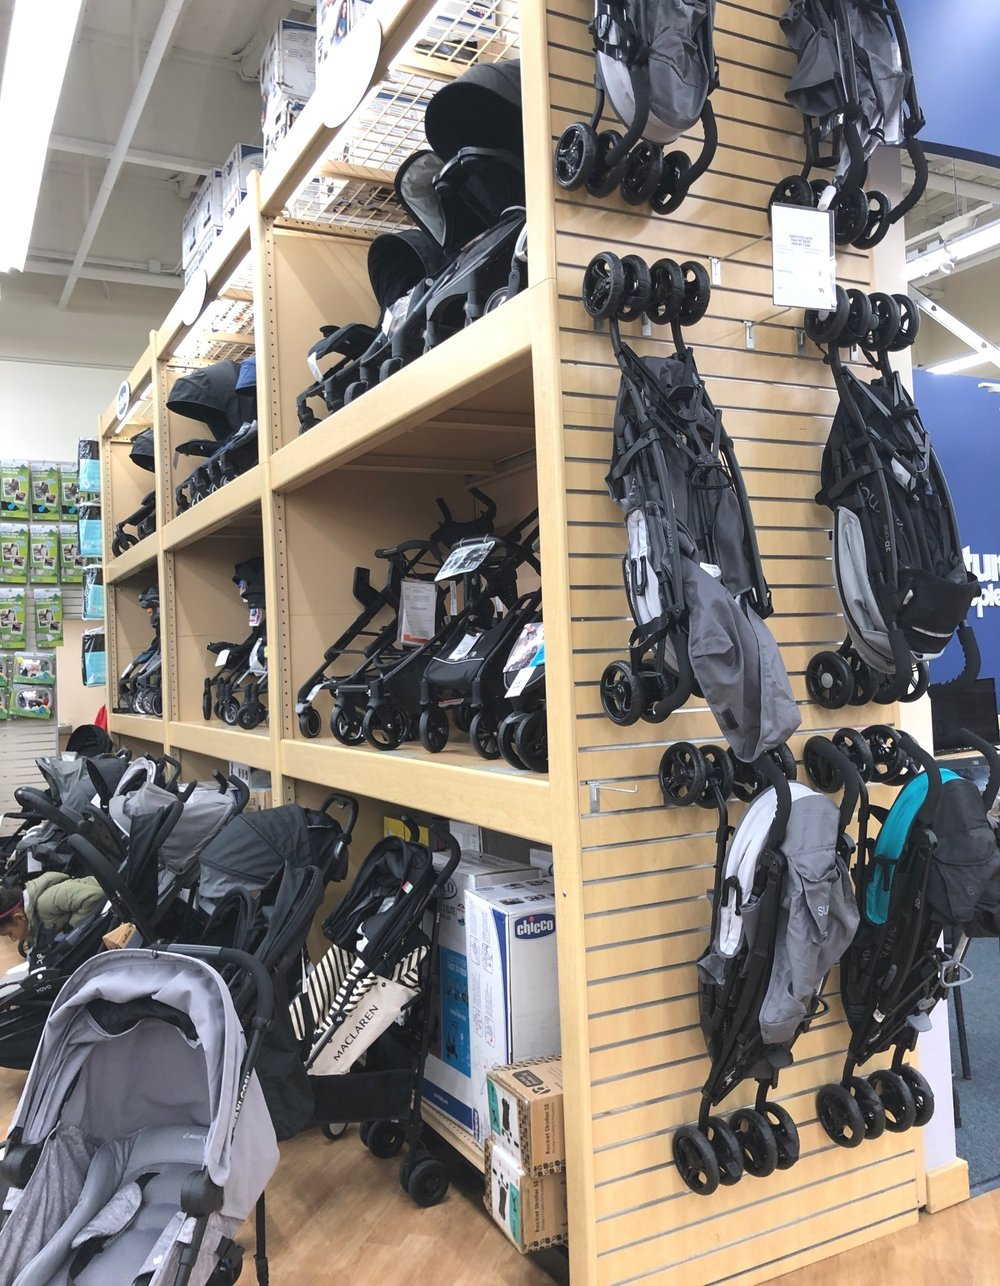 """Looking at the thousands of carseats and strollers I was thinking, """"how in the world am I supposed to know which one is the best/will work best for our baby?"""" Thank goodness these ladies were there to help."""